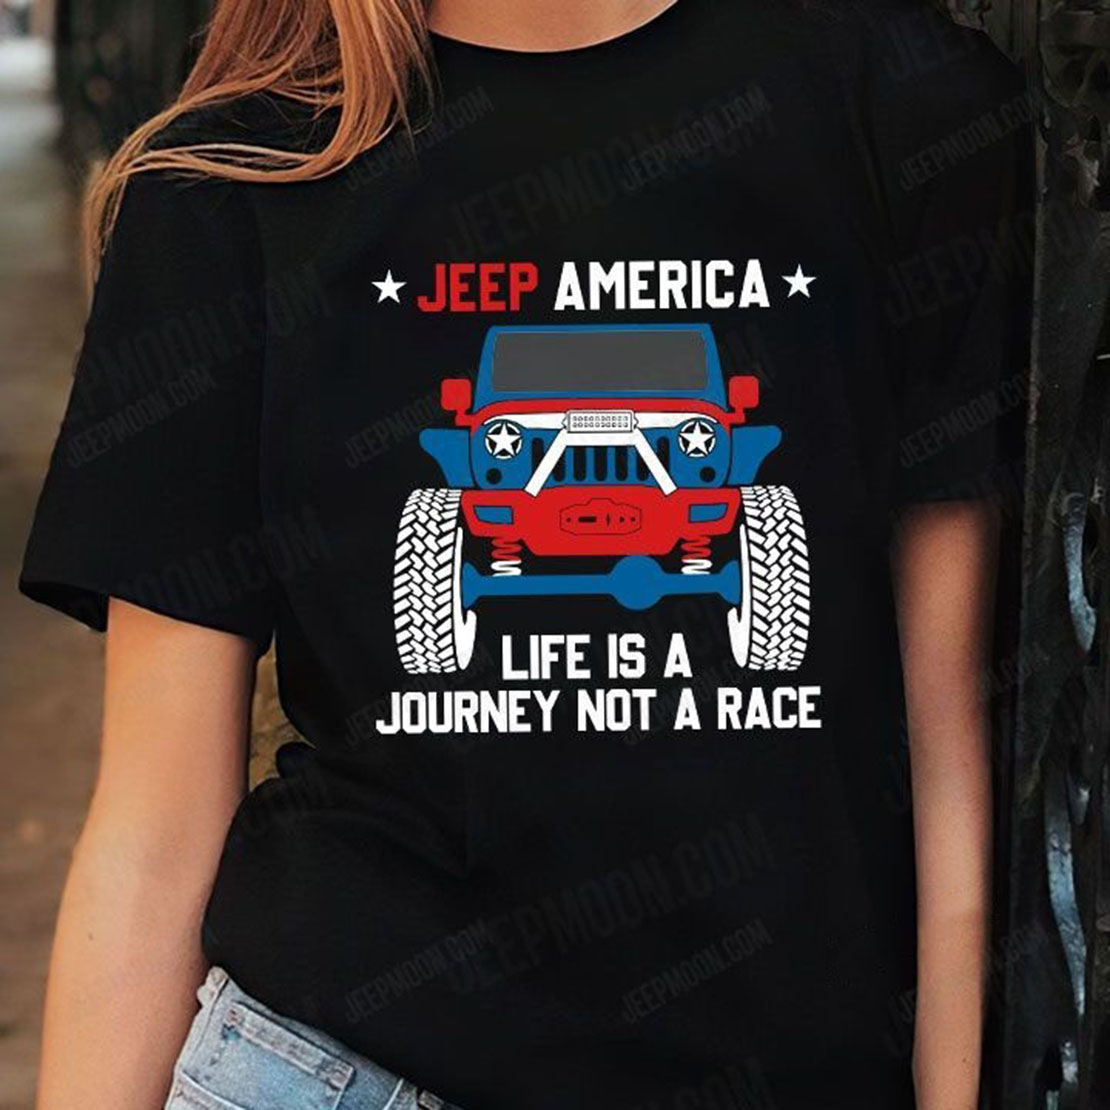 Jeep America Life is a journey not a race lady shirt